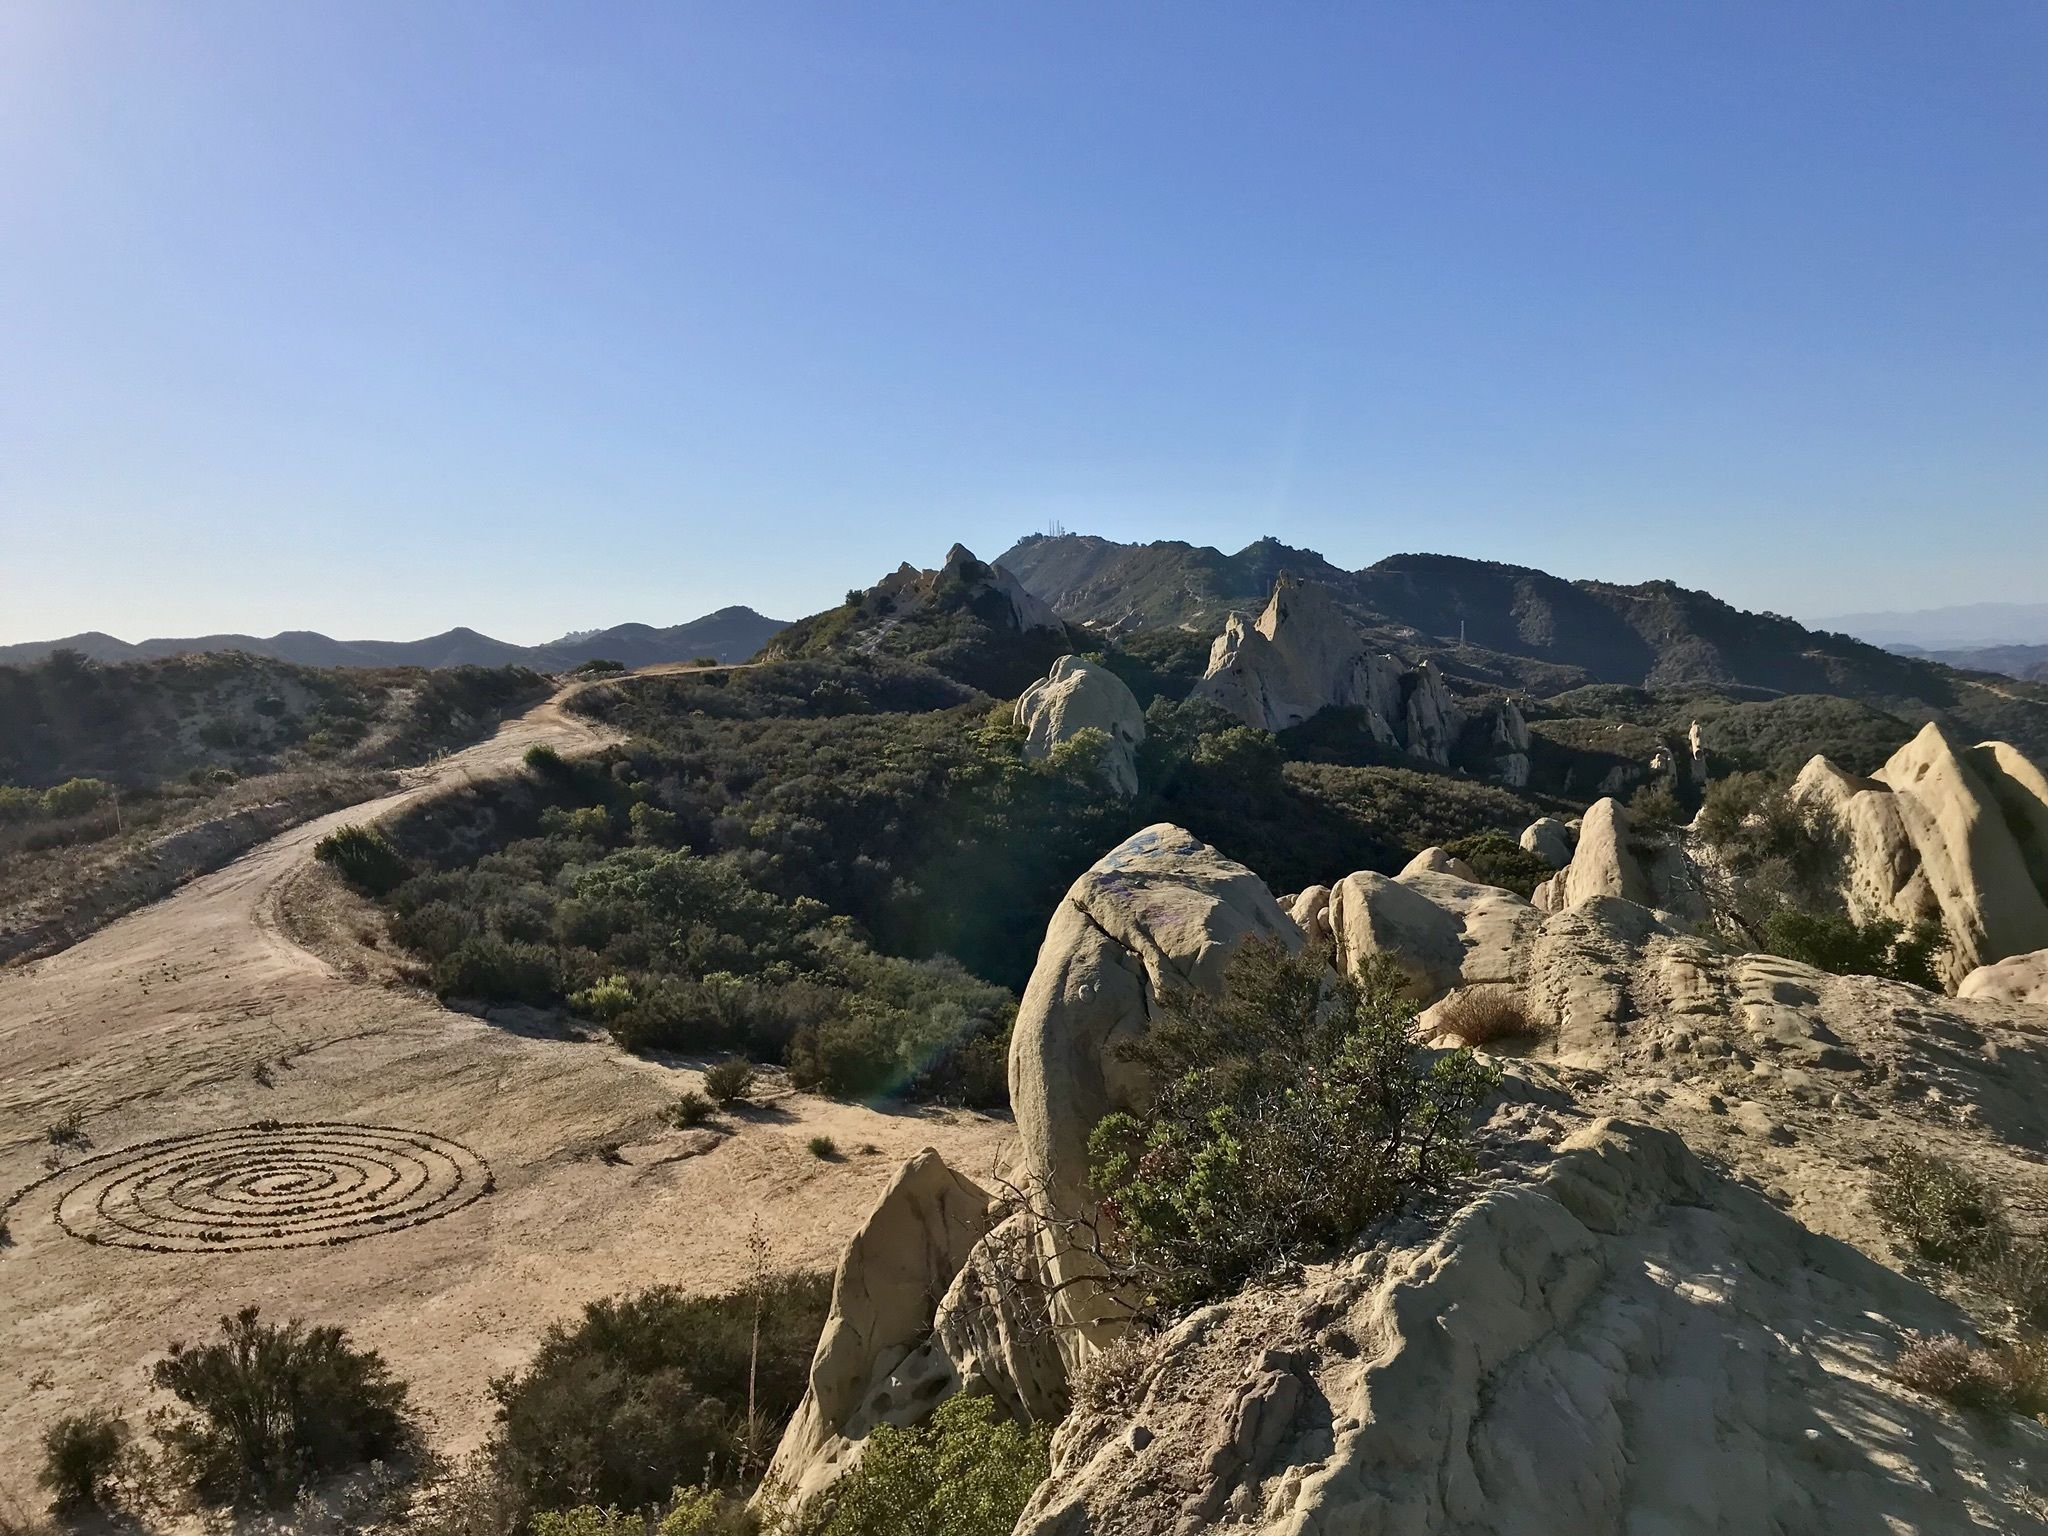 PEAK: Castro Crest - 7.6 miles and 1250 ft. of elevation gainDIFFICULTY: 3.5/5.SCENERY: ocean views from the crest, rock pinnacles, wind cavesFUN FACT: this trail features a stone art spiral that has been kept up by hikers for years!